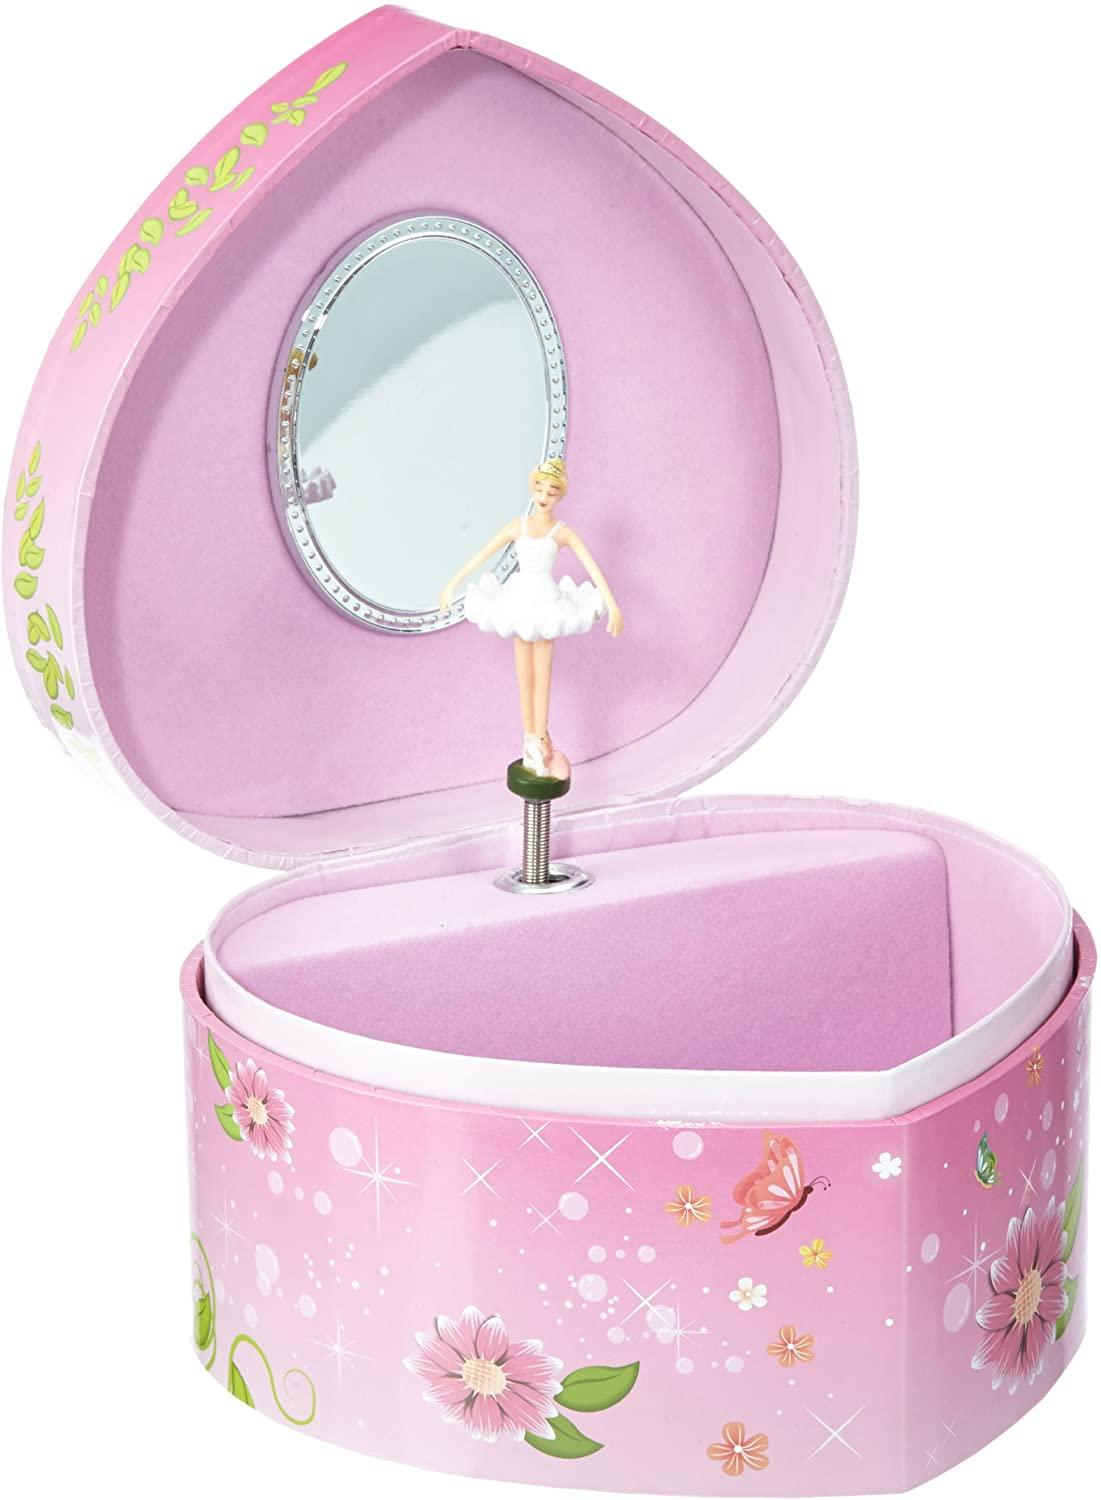 Musicbox Kingdom 22163 Ballerina Musical Jewelry Box, Playing The Melody